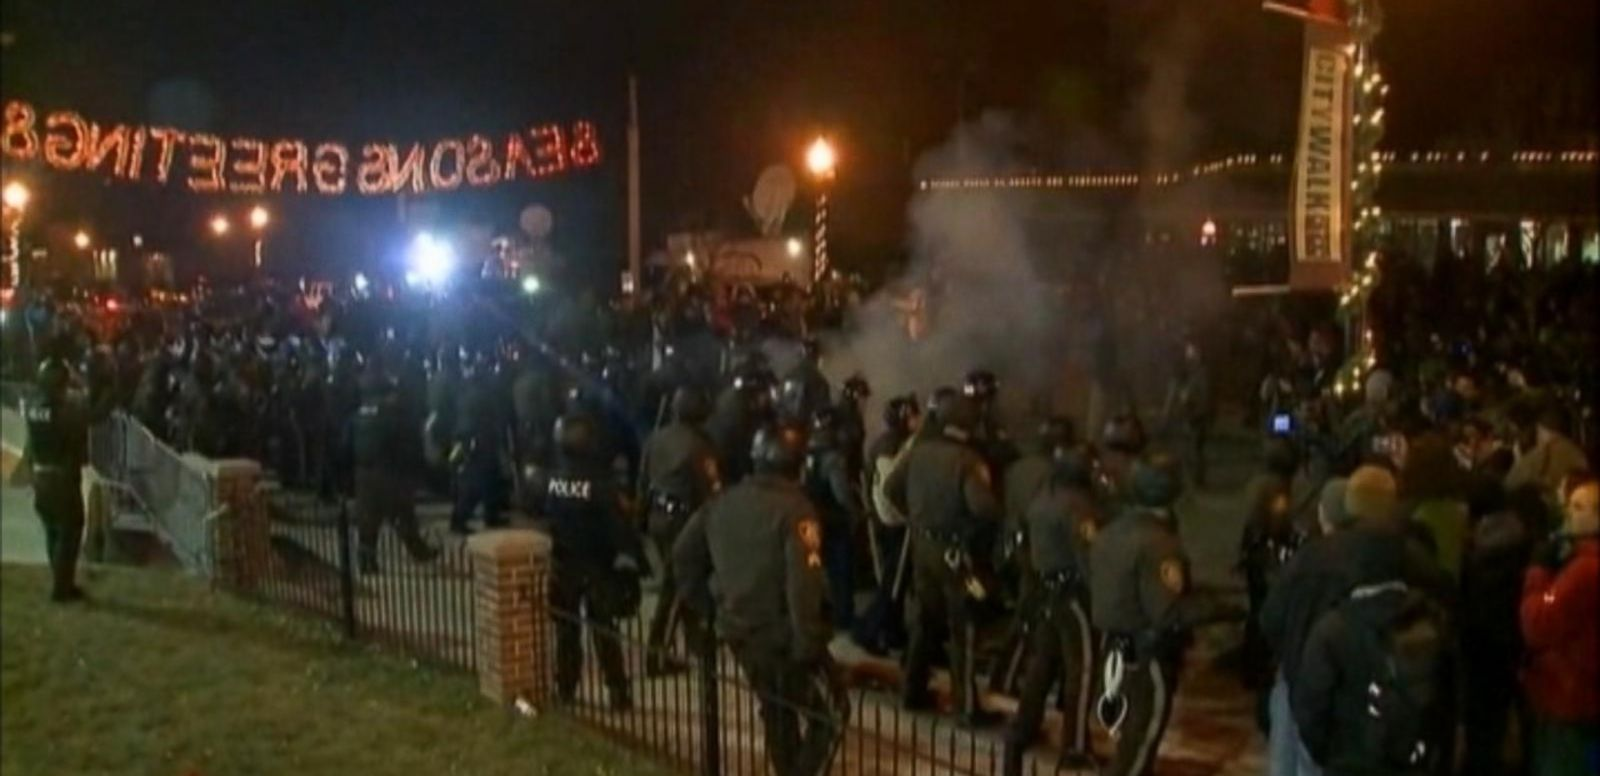 VIDEO: Overnight Fury in Ferguson, MO